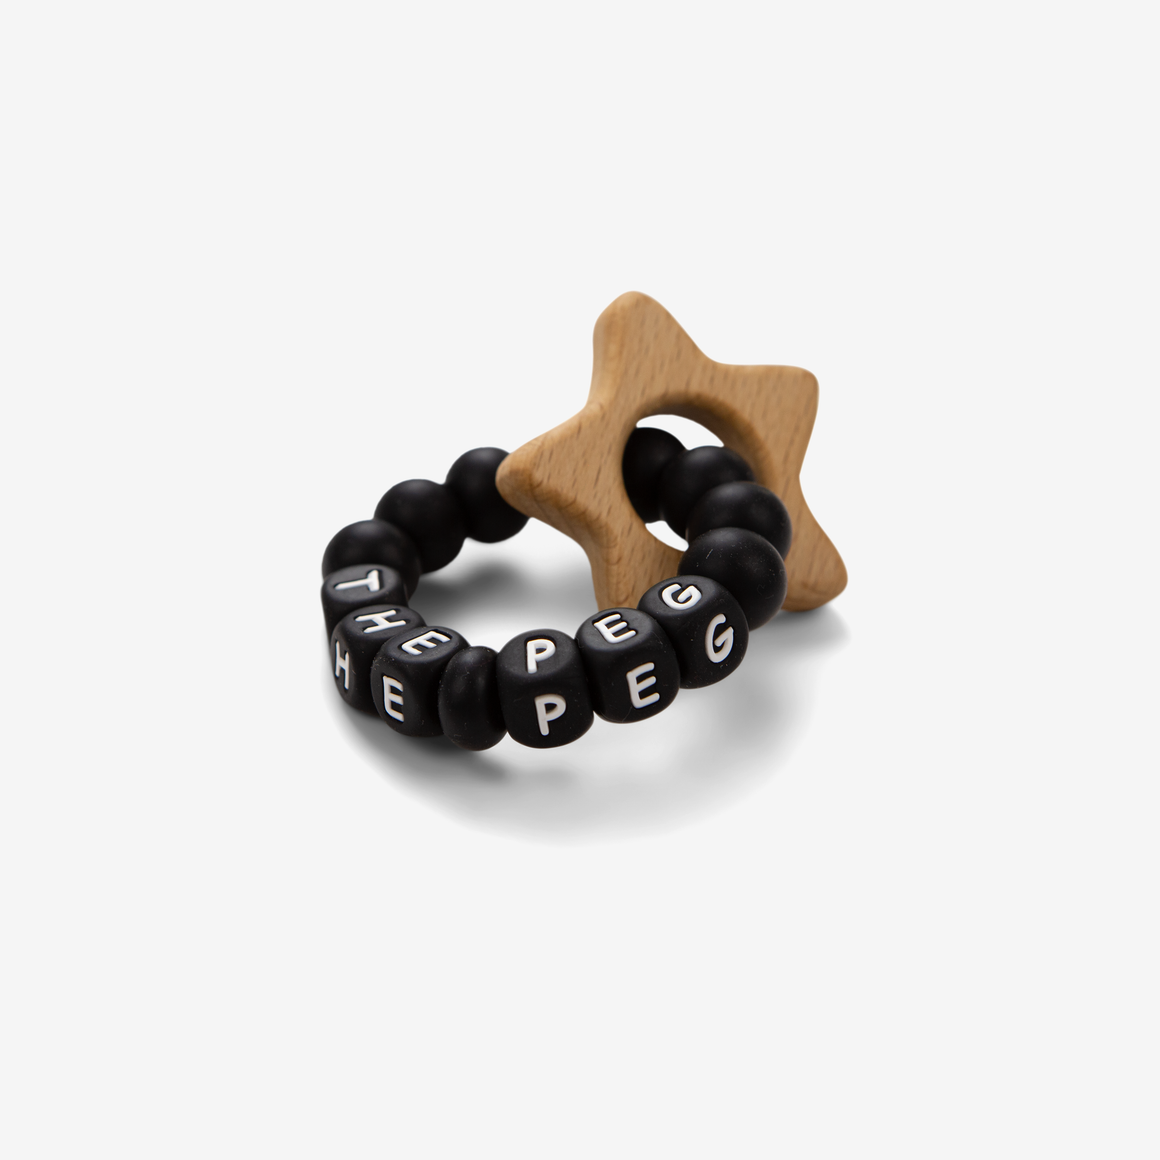 The Peg Authentic x Tiny Inspirations Teething Ring (Monochromatic Black)